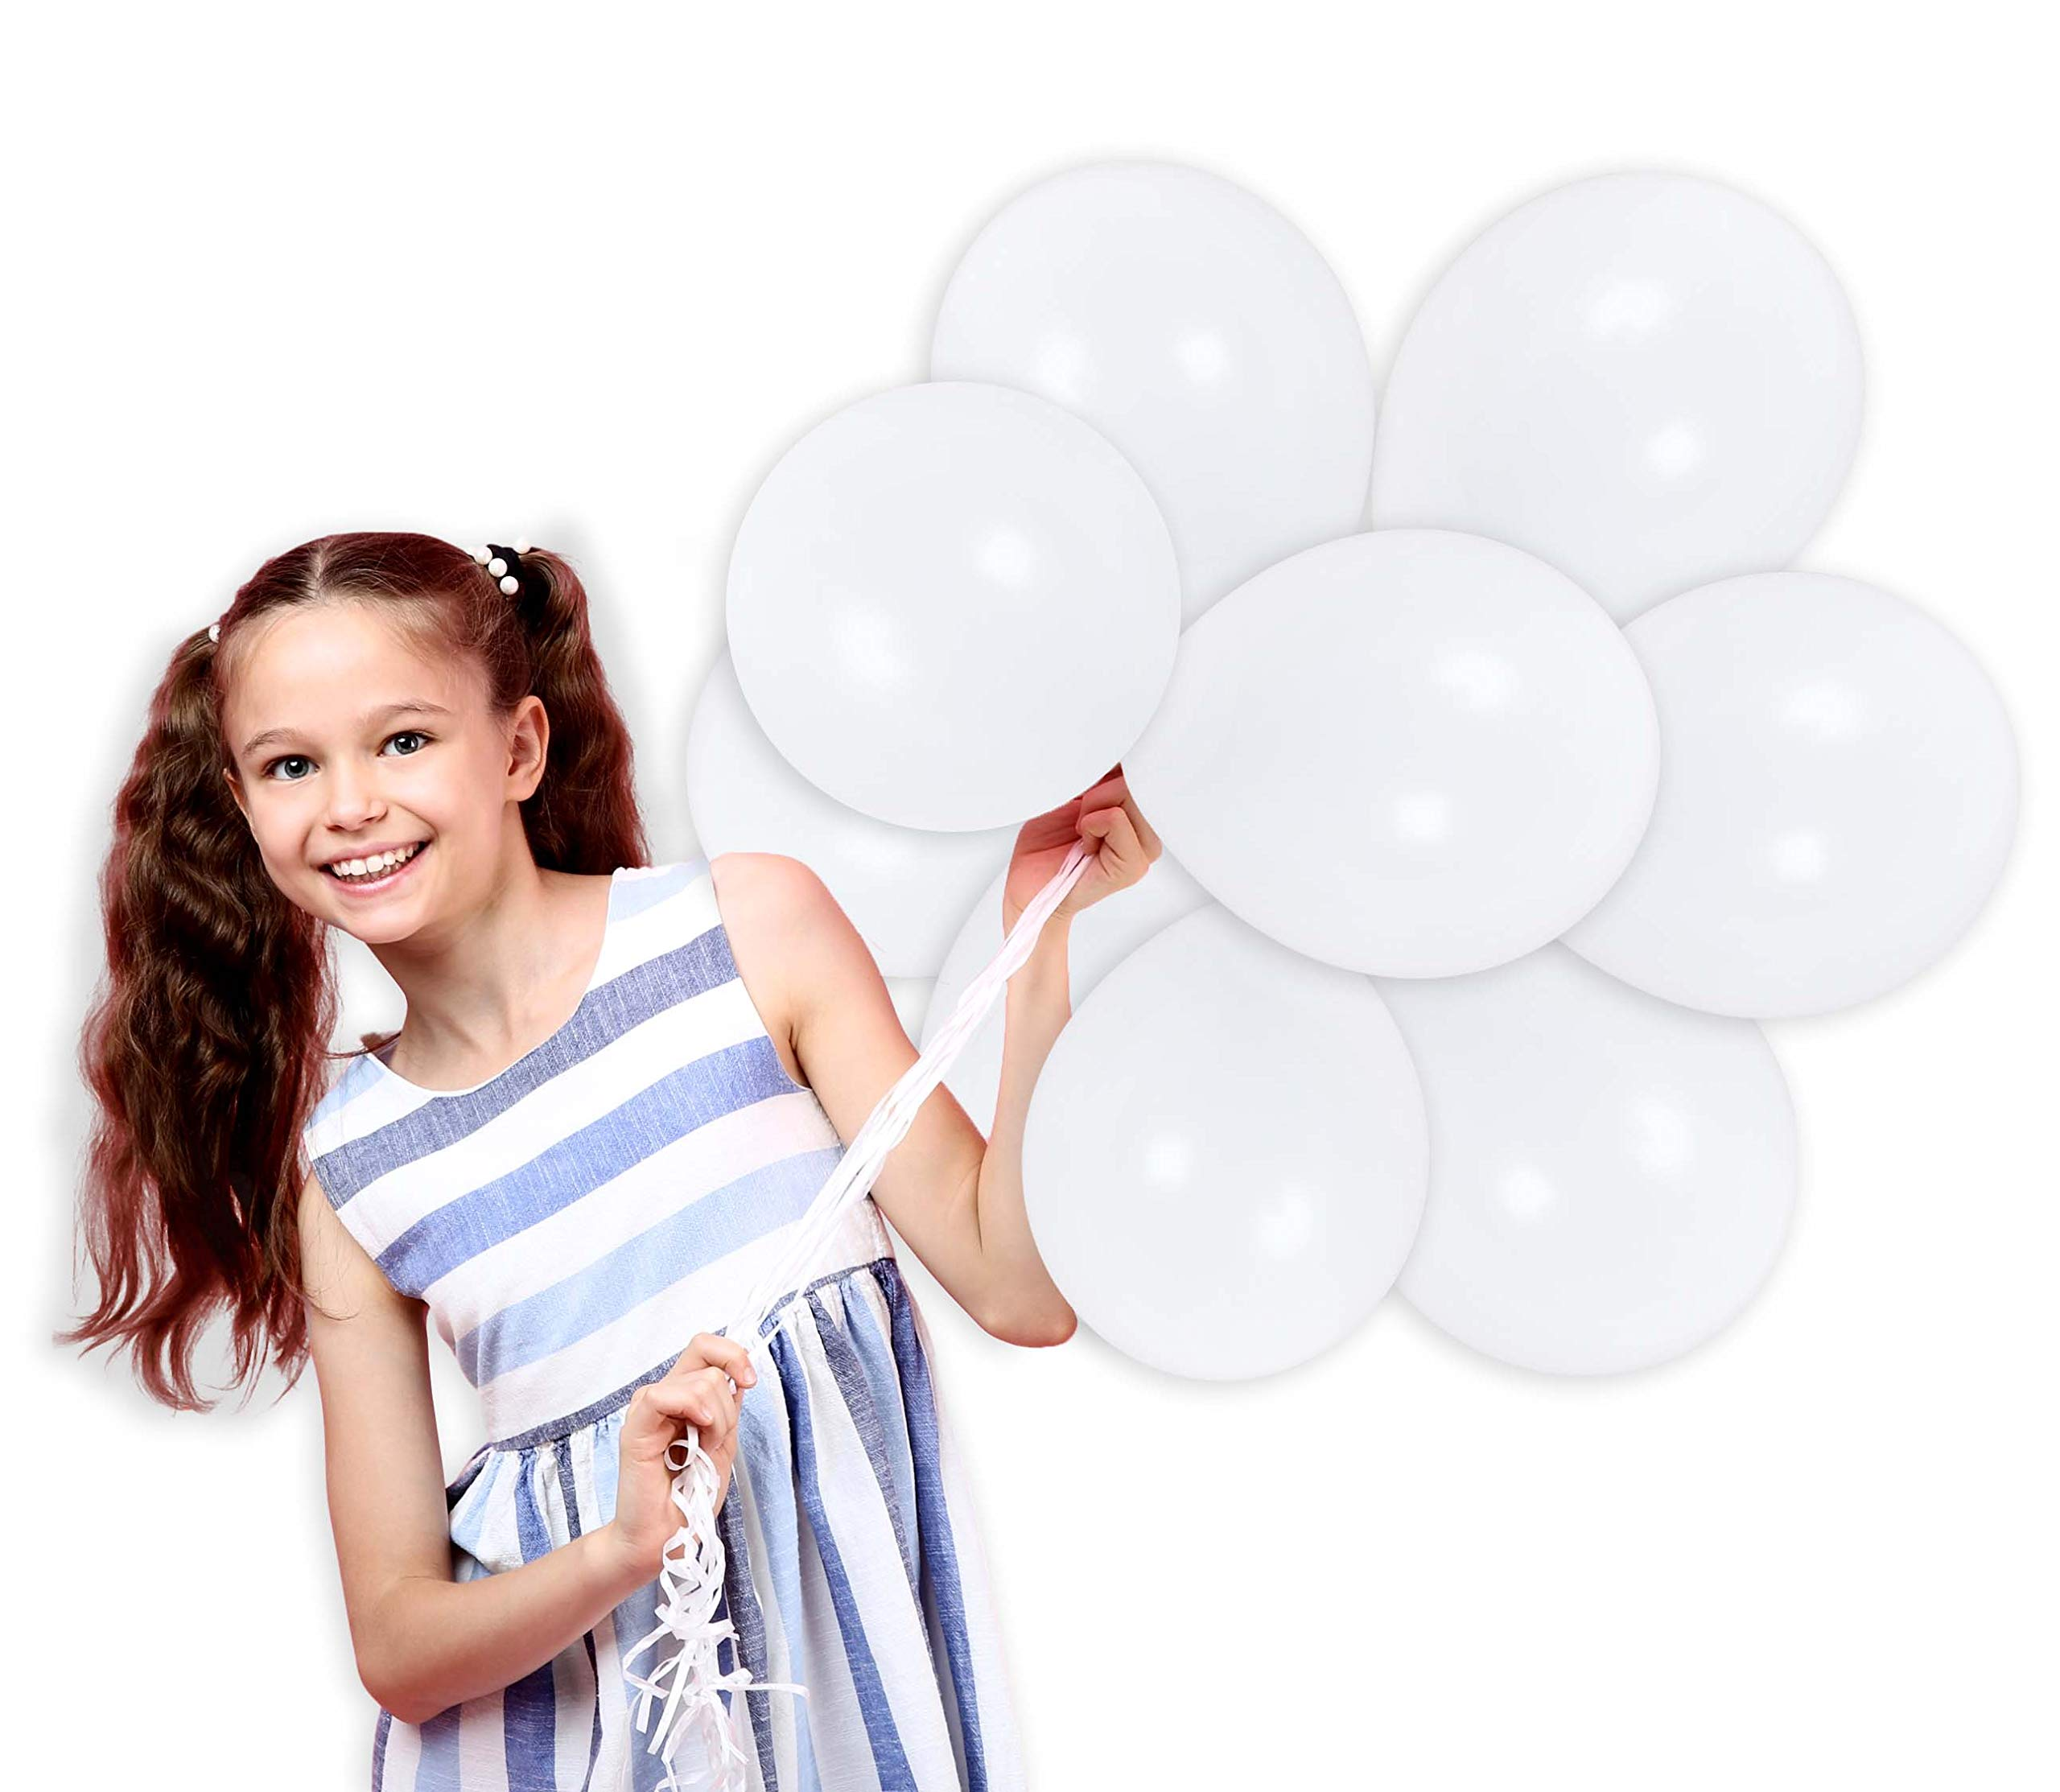 Treasures Gifted White Solid Latex Balloons 12 Inch 36 Pack Premium Quality Bouquet Wedding Bridal Shower Decorations for Birthday Baby Shower Party St. Patrick's Day Party Supplies